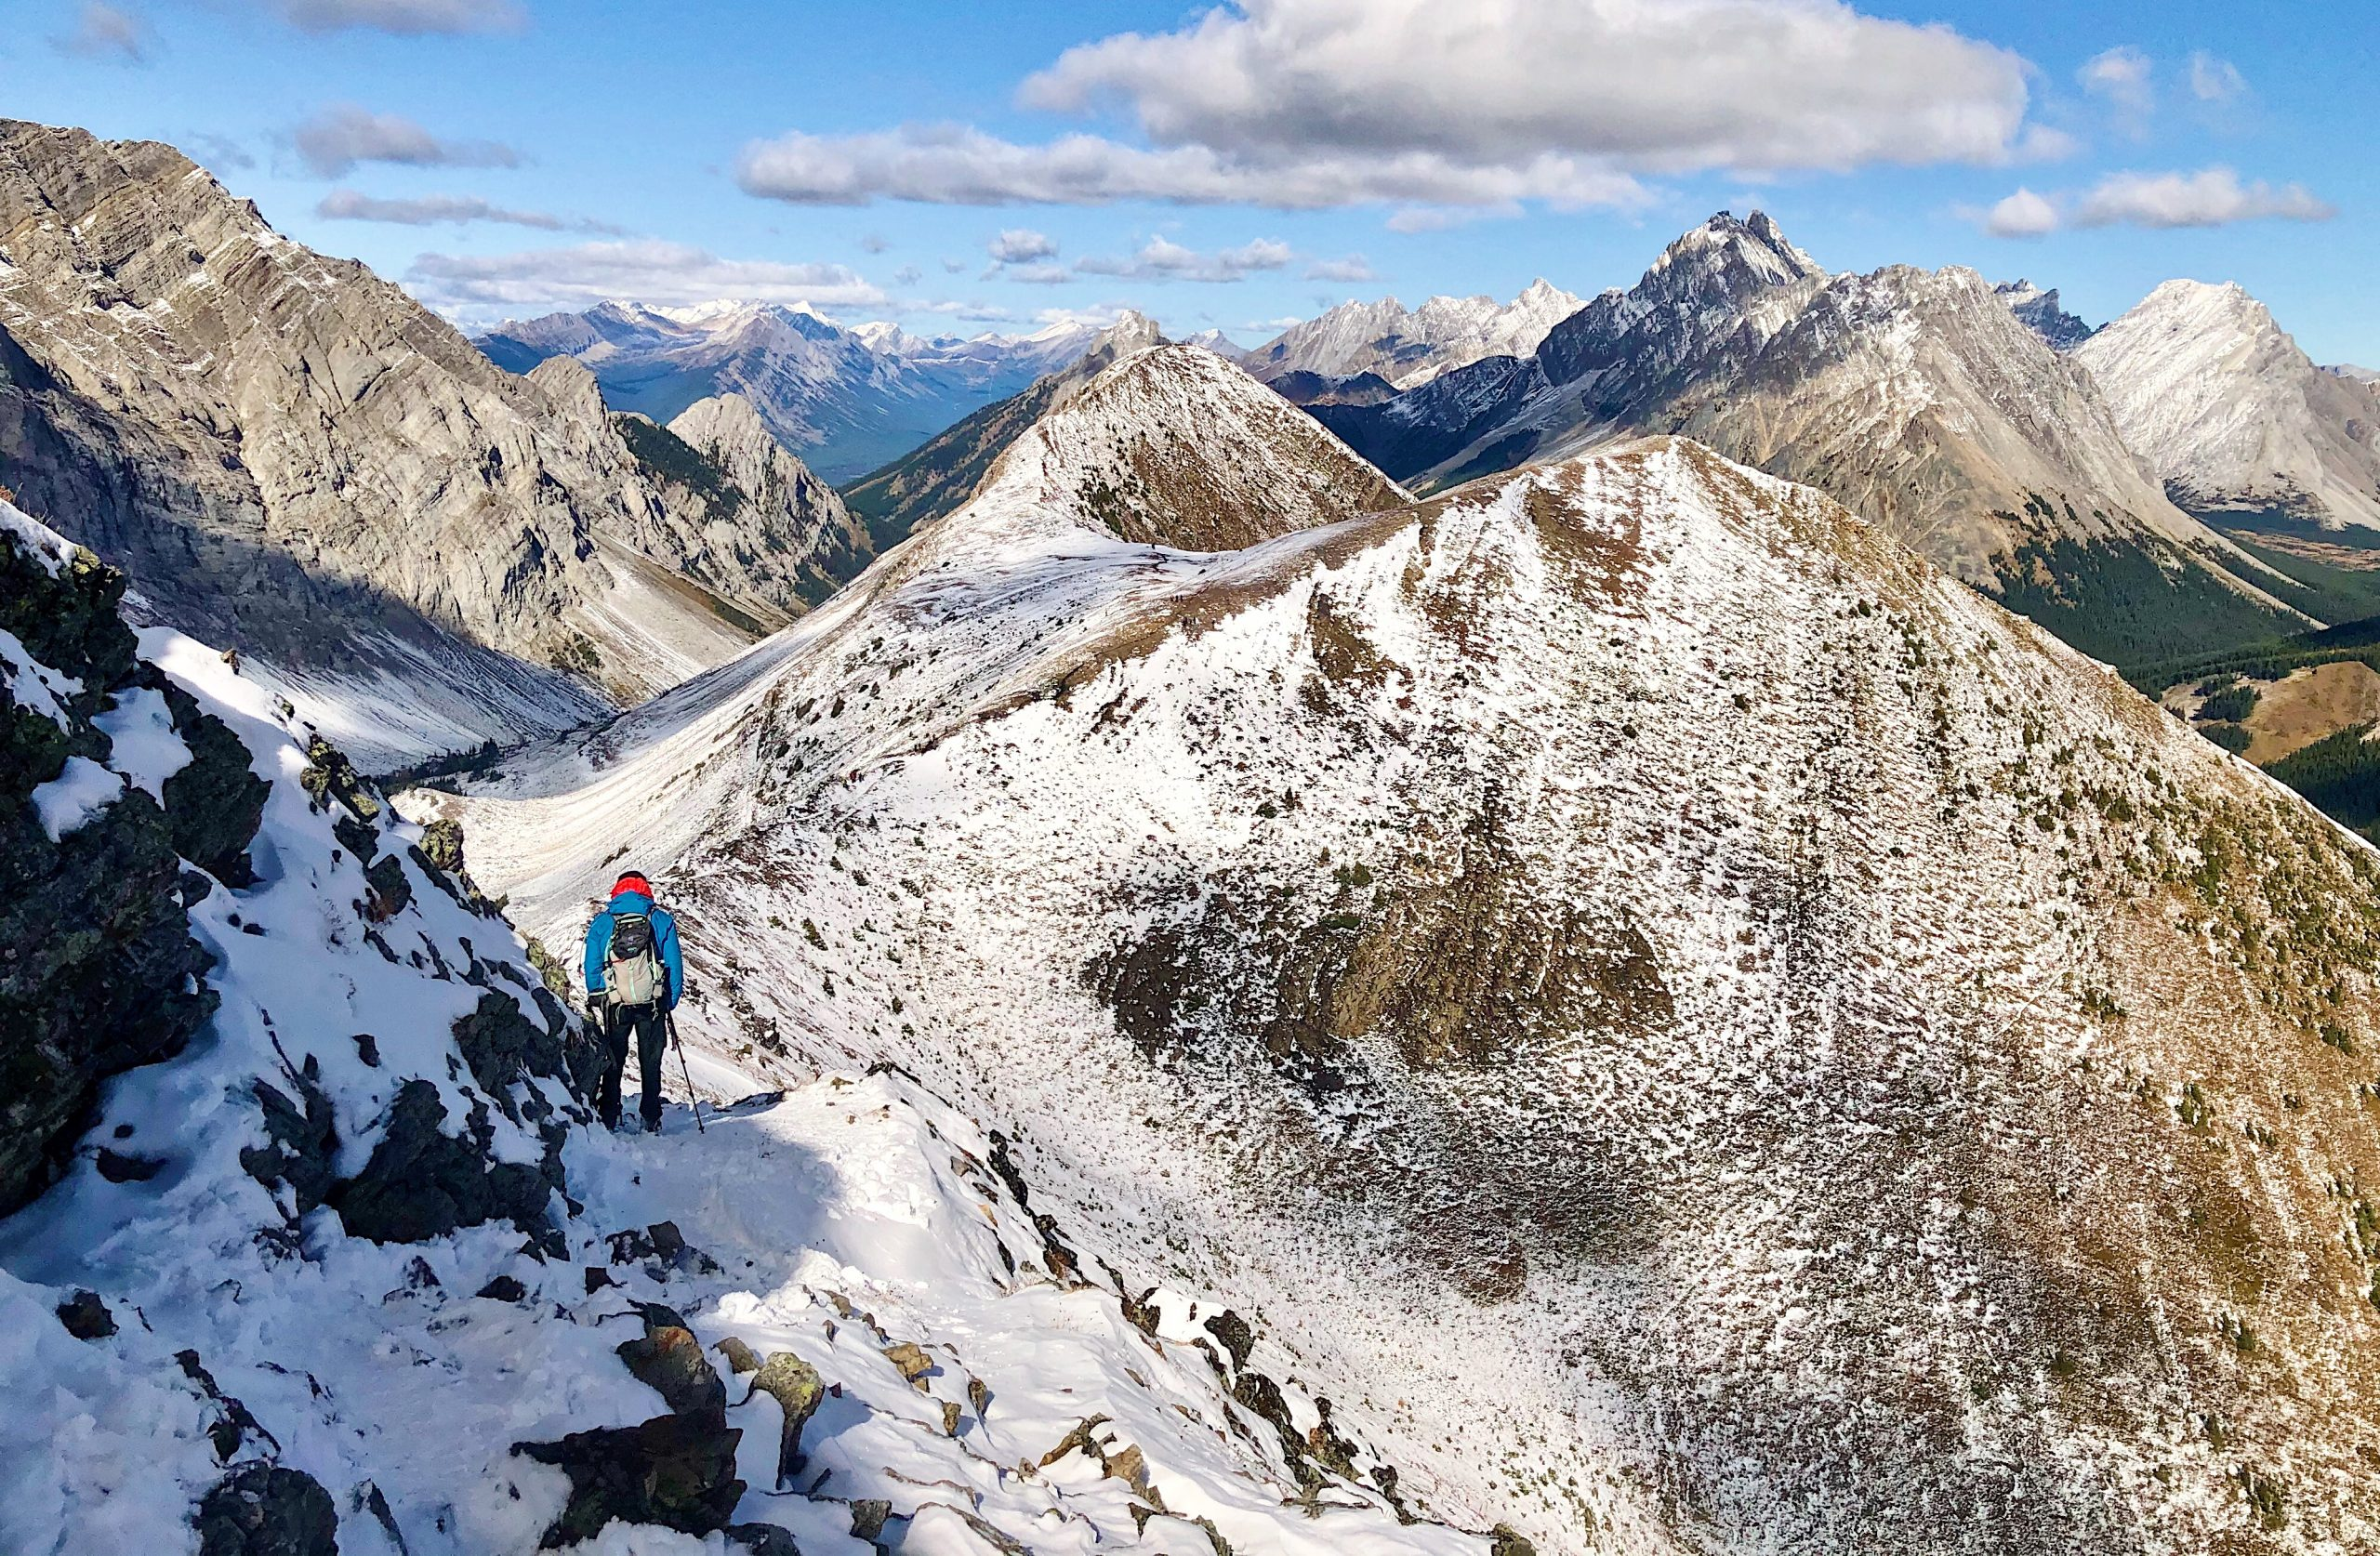 The Breathtaking Pocaterra Ridge Hike in Kananaskis (With Yellow Larches!) via @outandacross